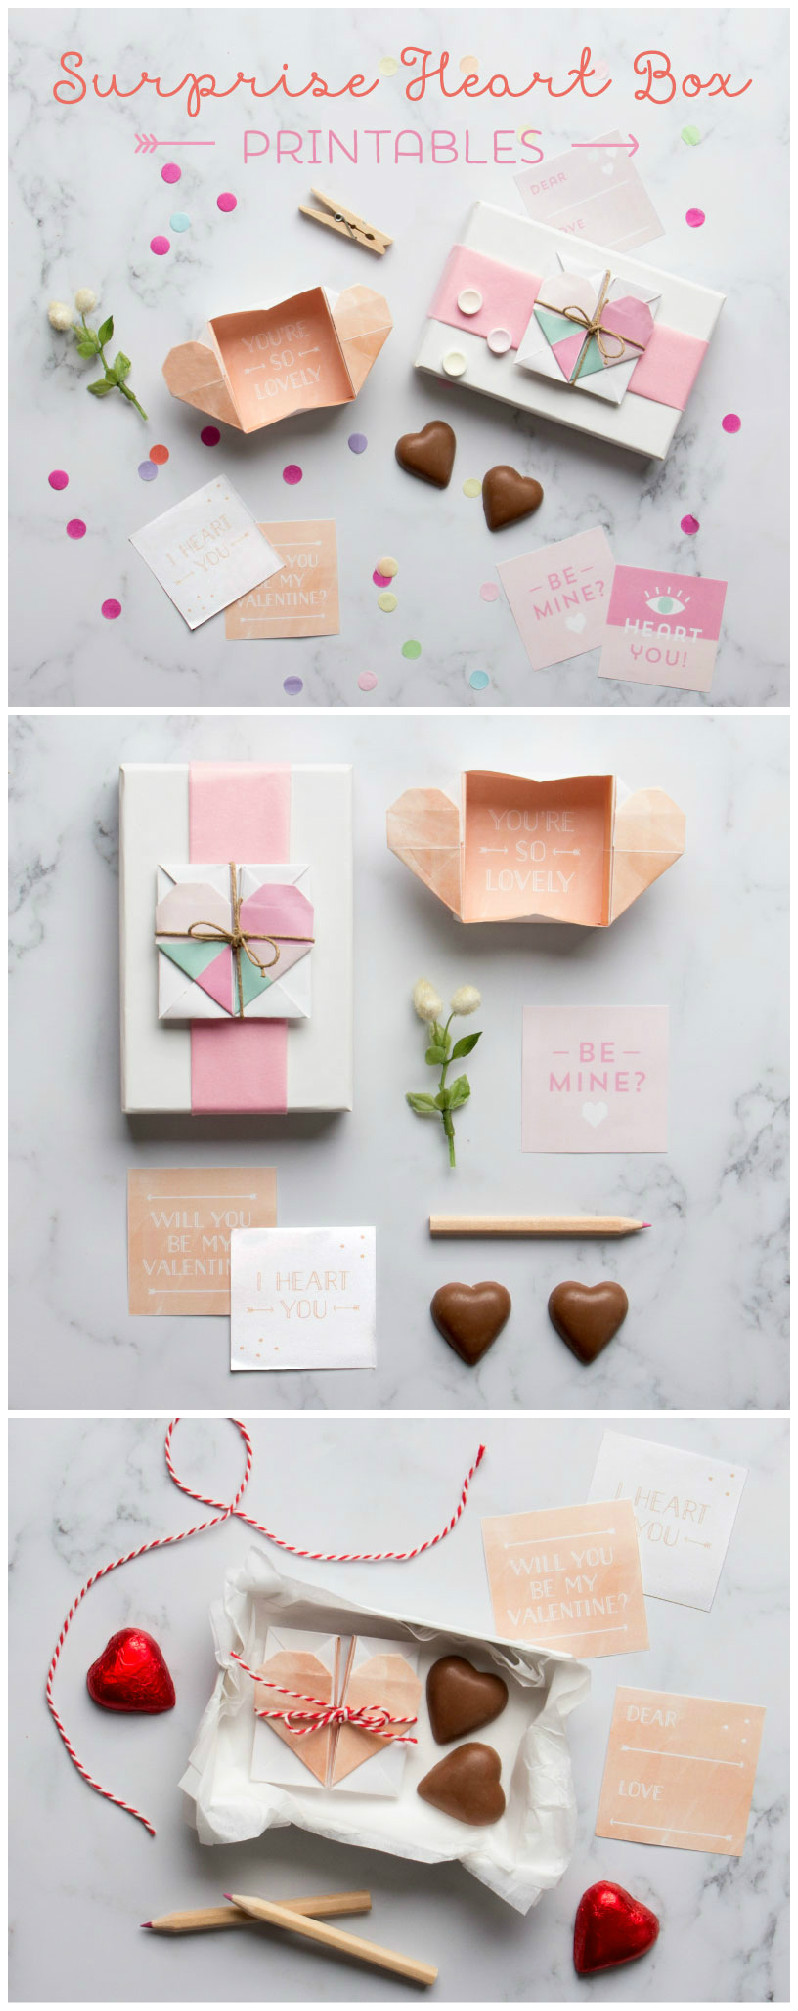 Surprise heart box printables, to make an origami gift box. These are adorable